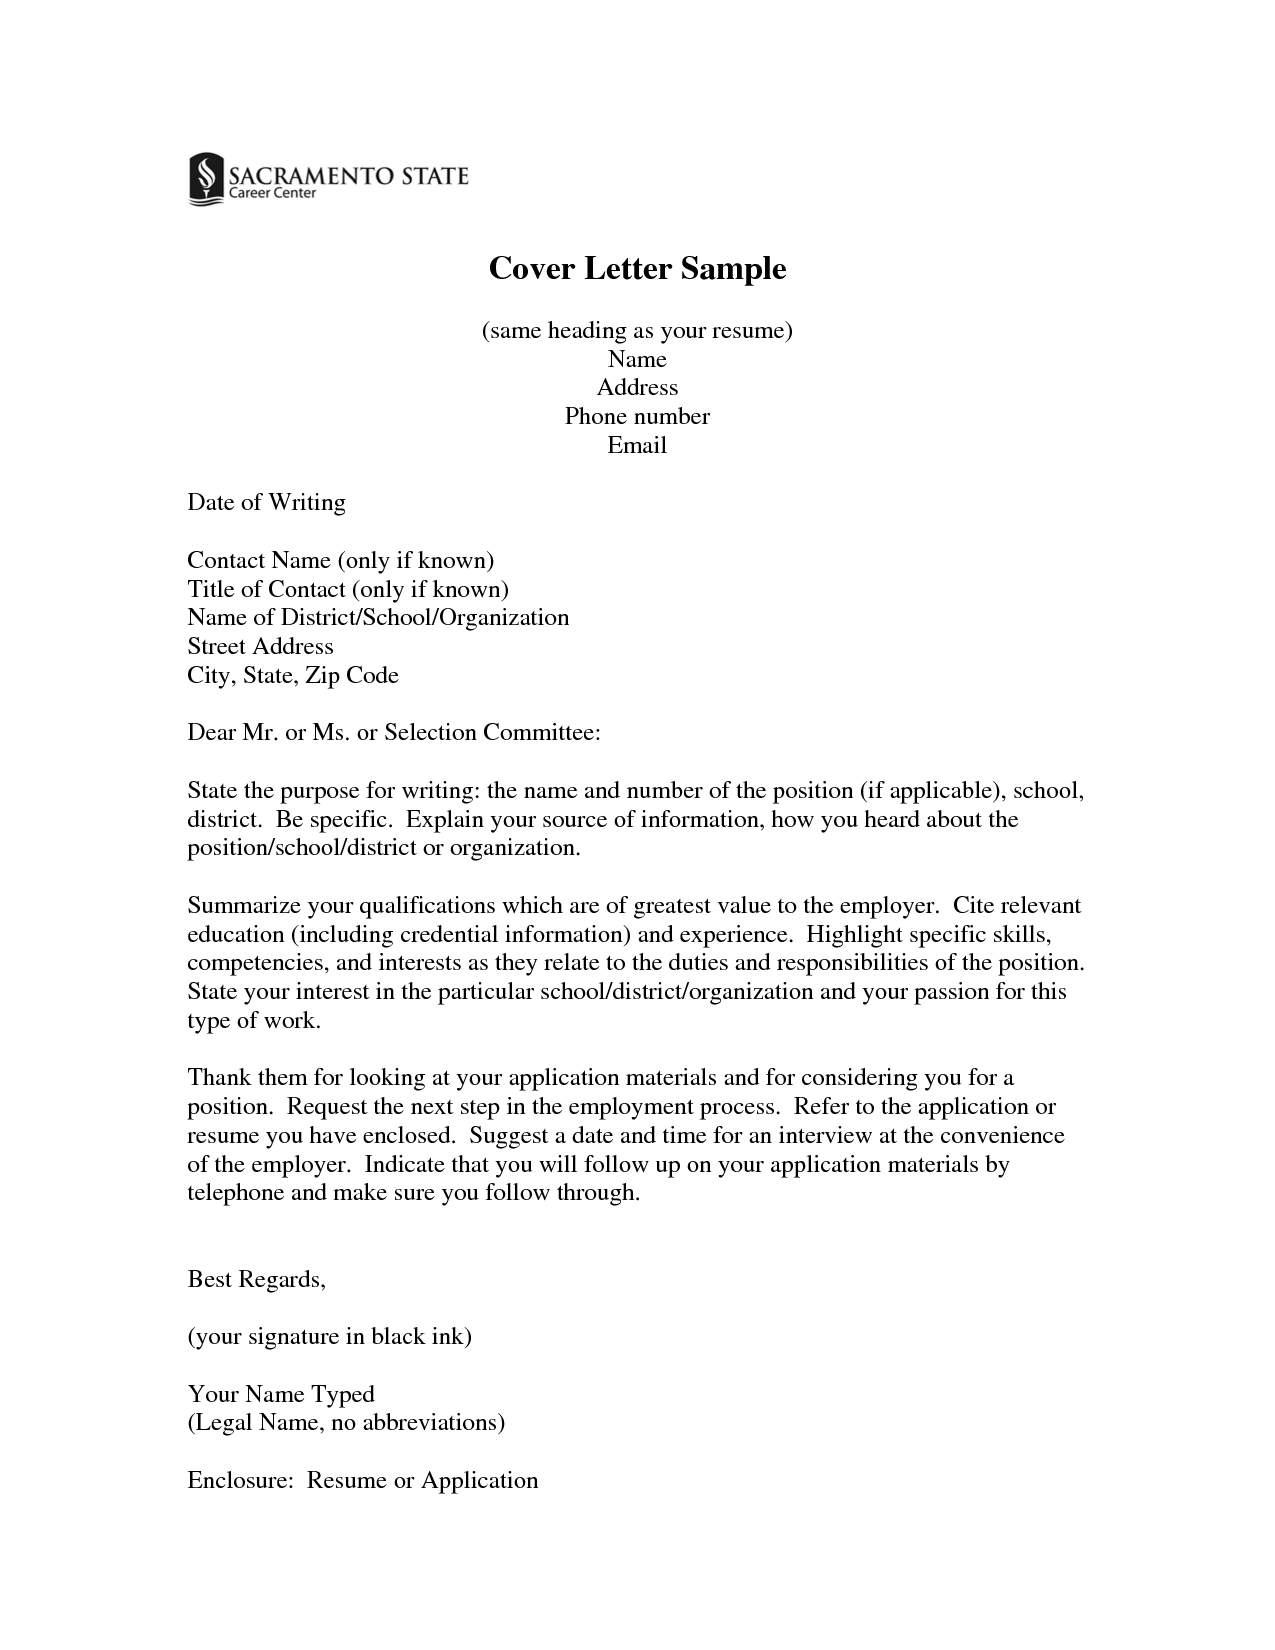 Same cover letters for resume cover letter sample same heading same cover letters for resume cover letter sample same heading as your resume name address madrichimfo Gallery